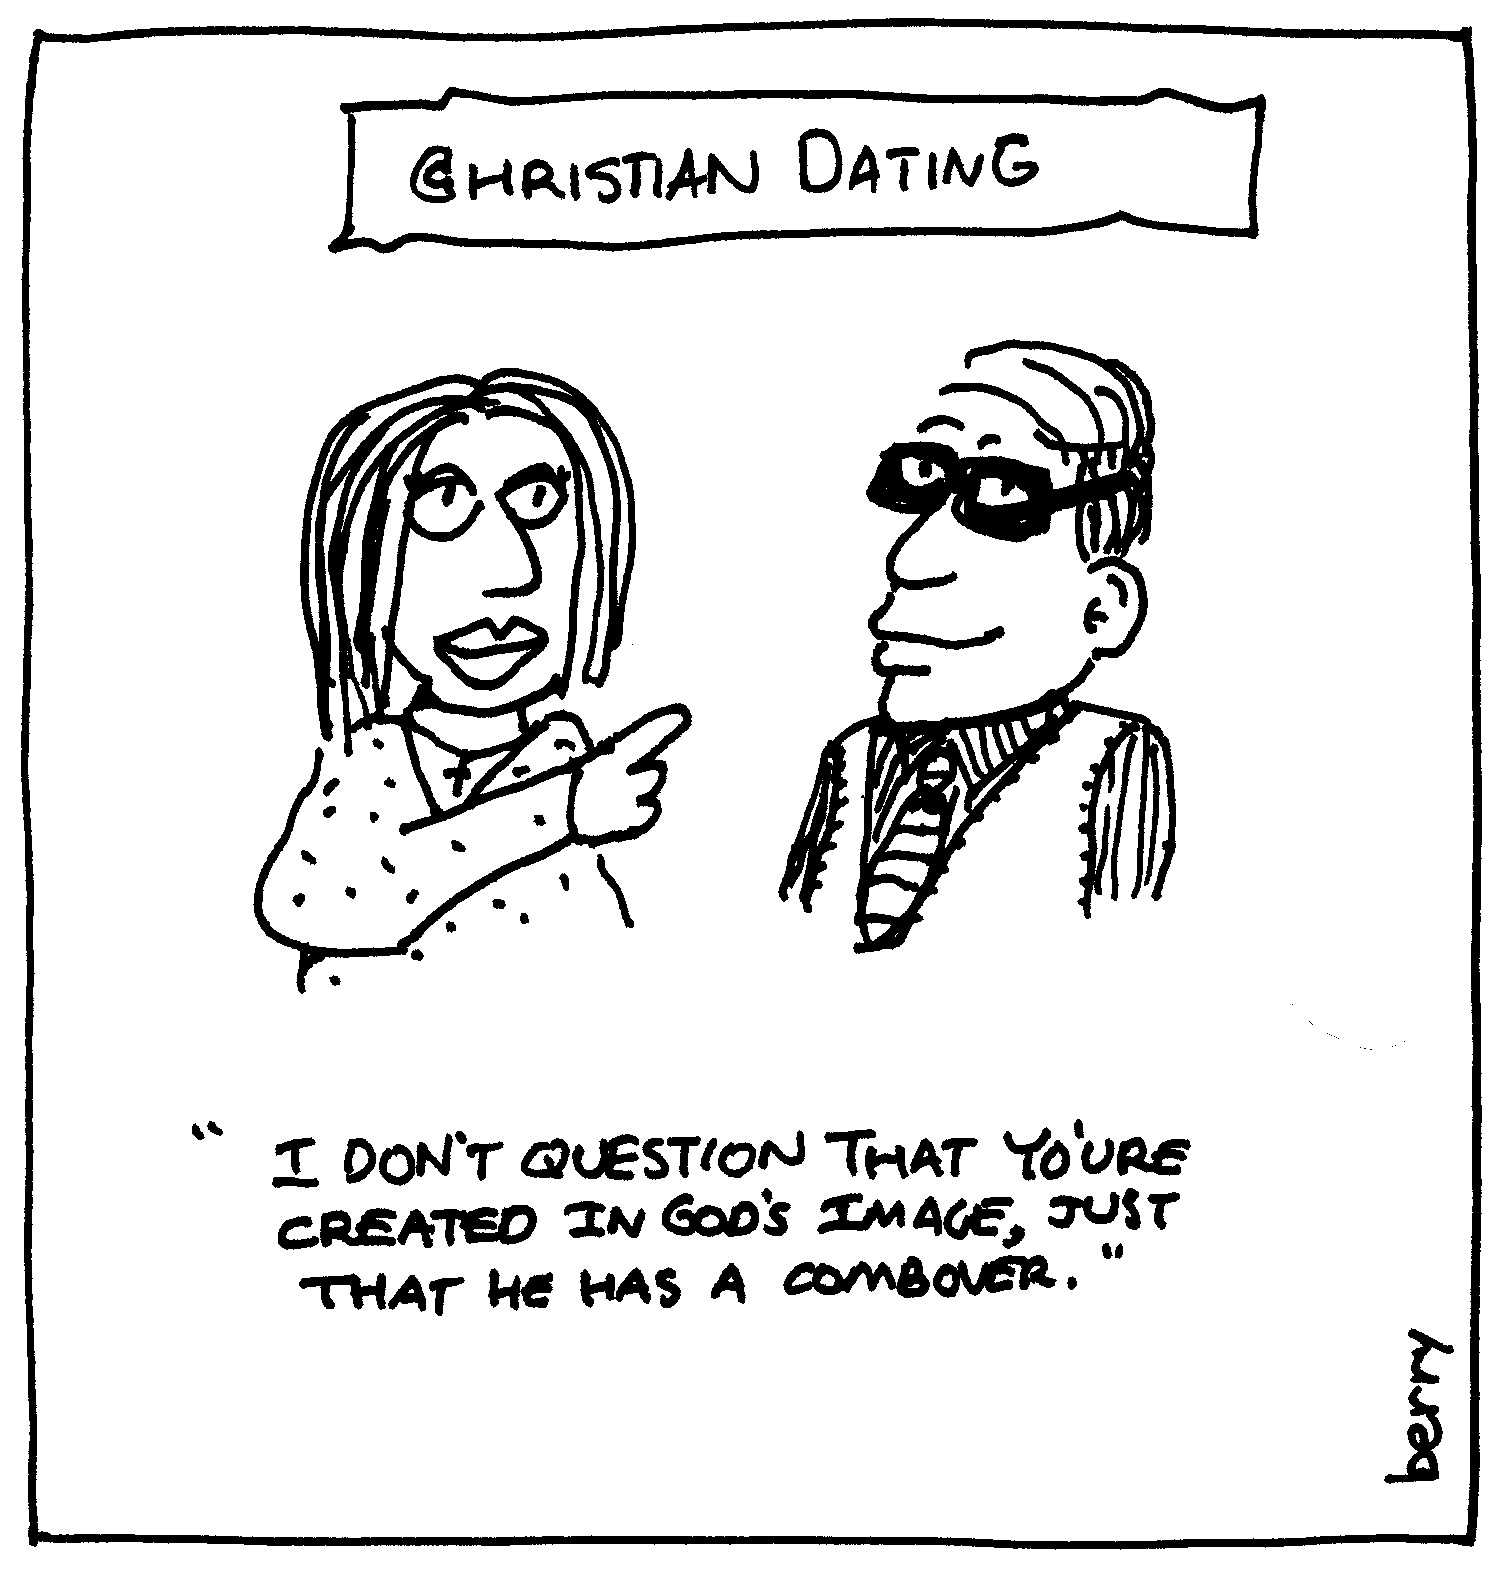 Cartoons about christian dating